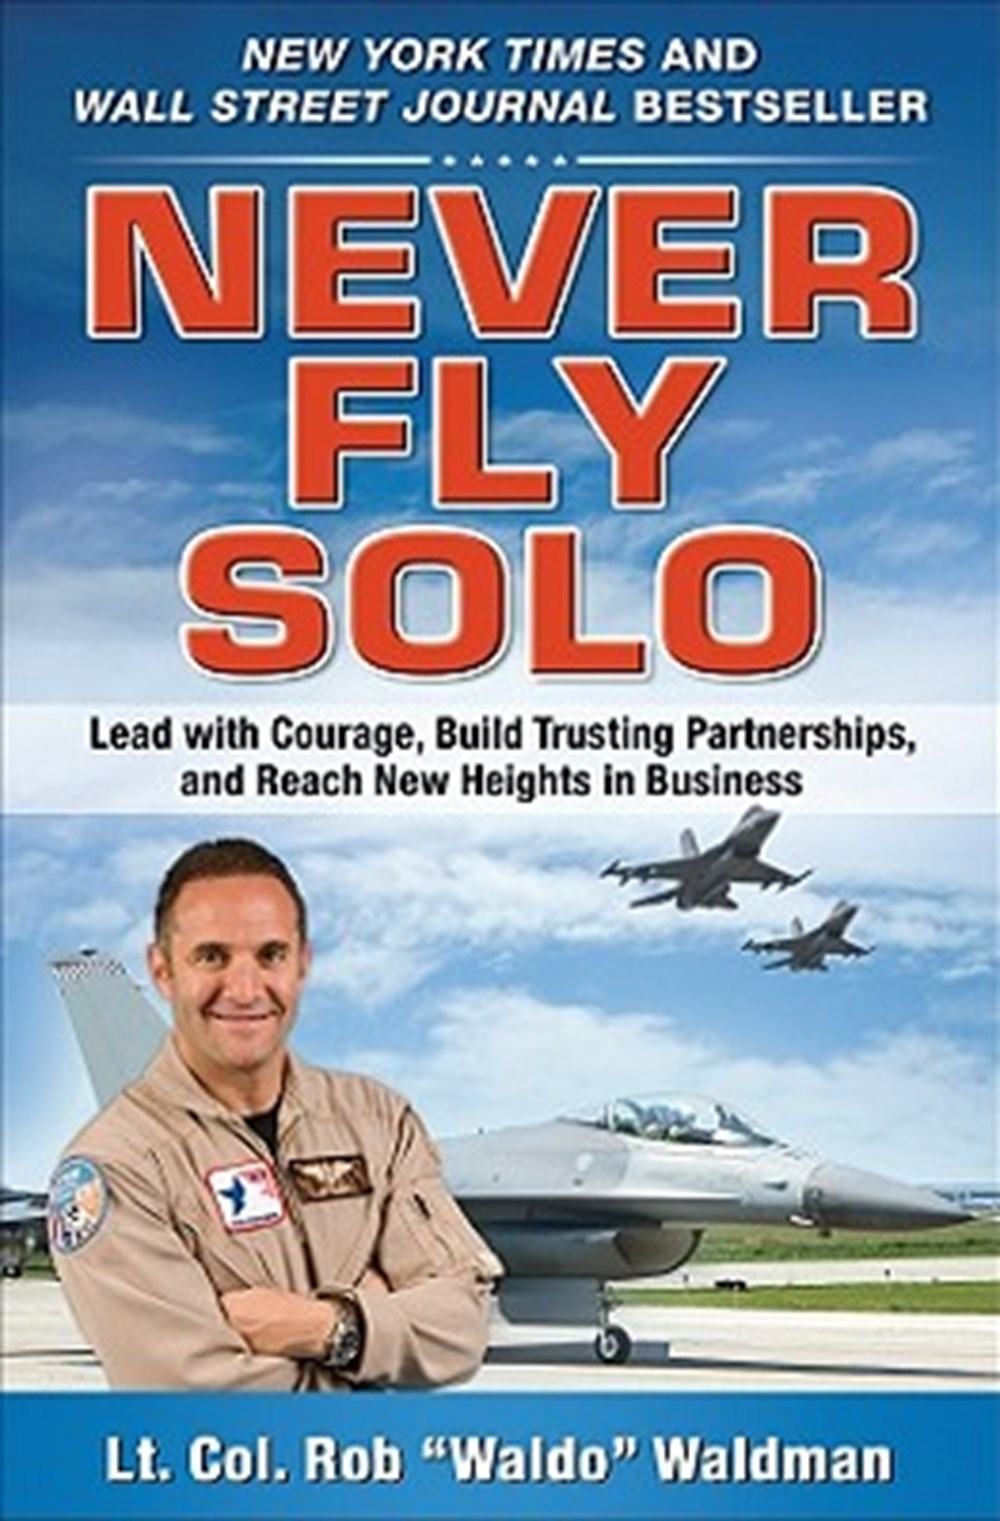 Never Fly Solo Lead with Courage, Build Trusting Partnerships, and Reach New Heights in Business